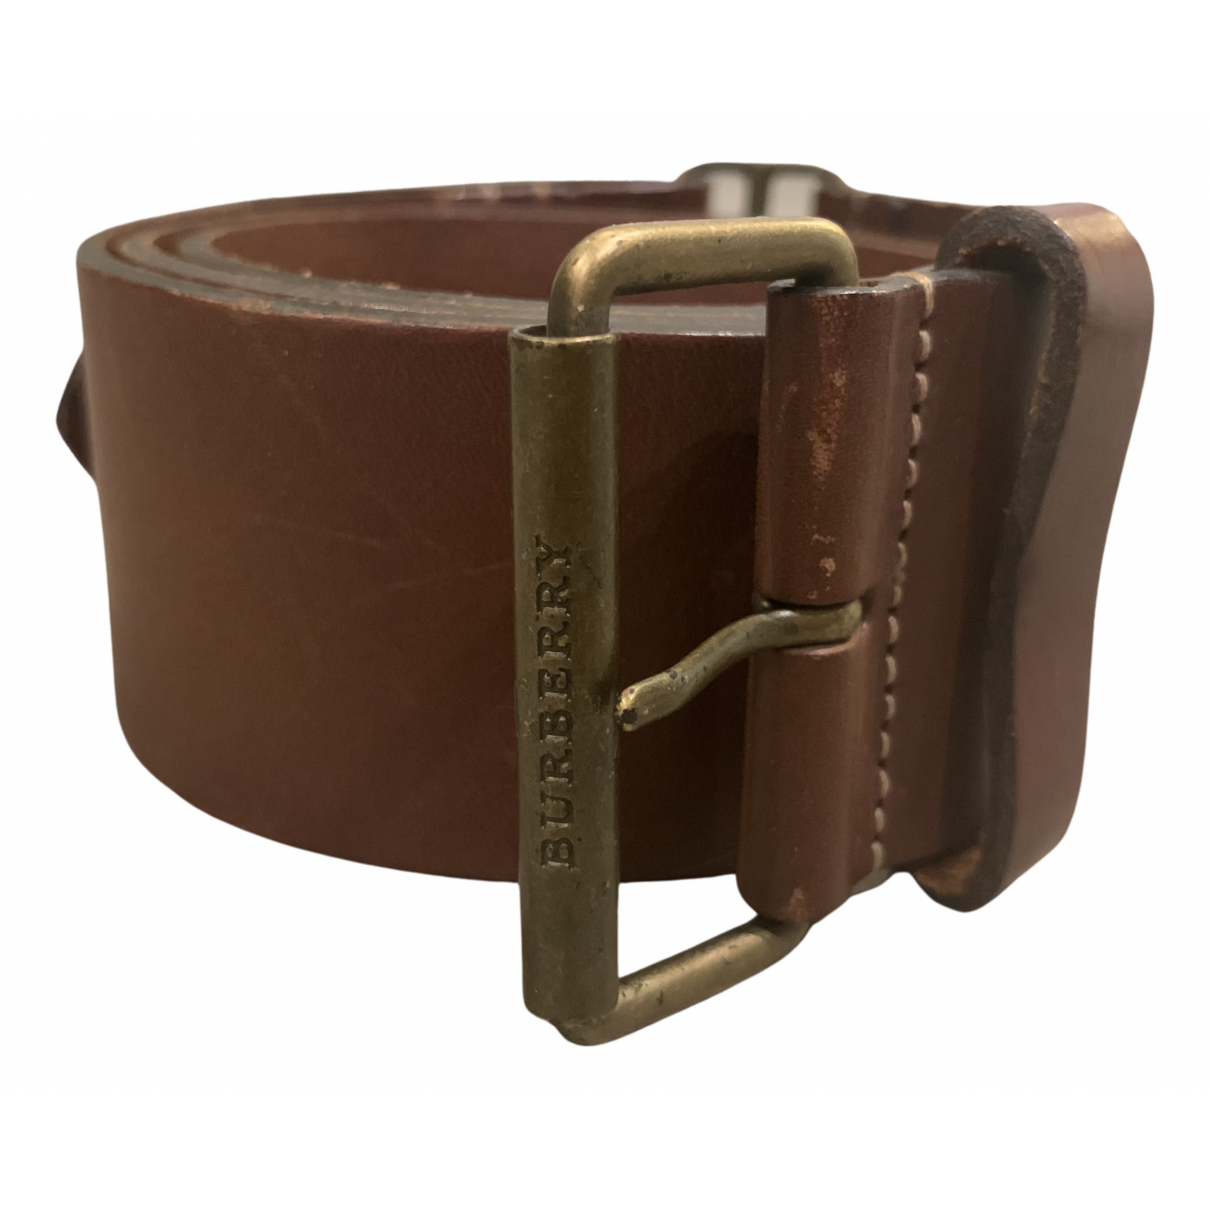 Burberry N Brown Leather belt for Women 80 cm